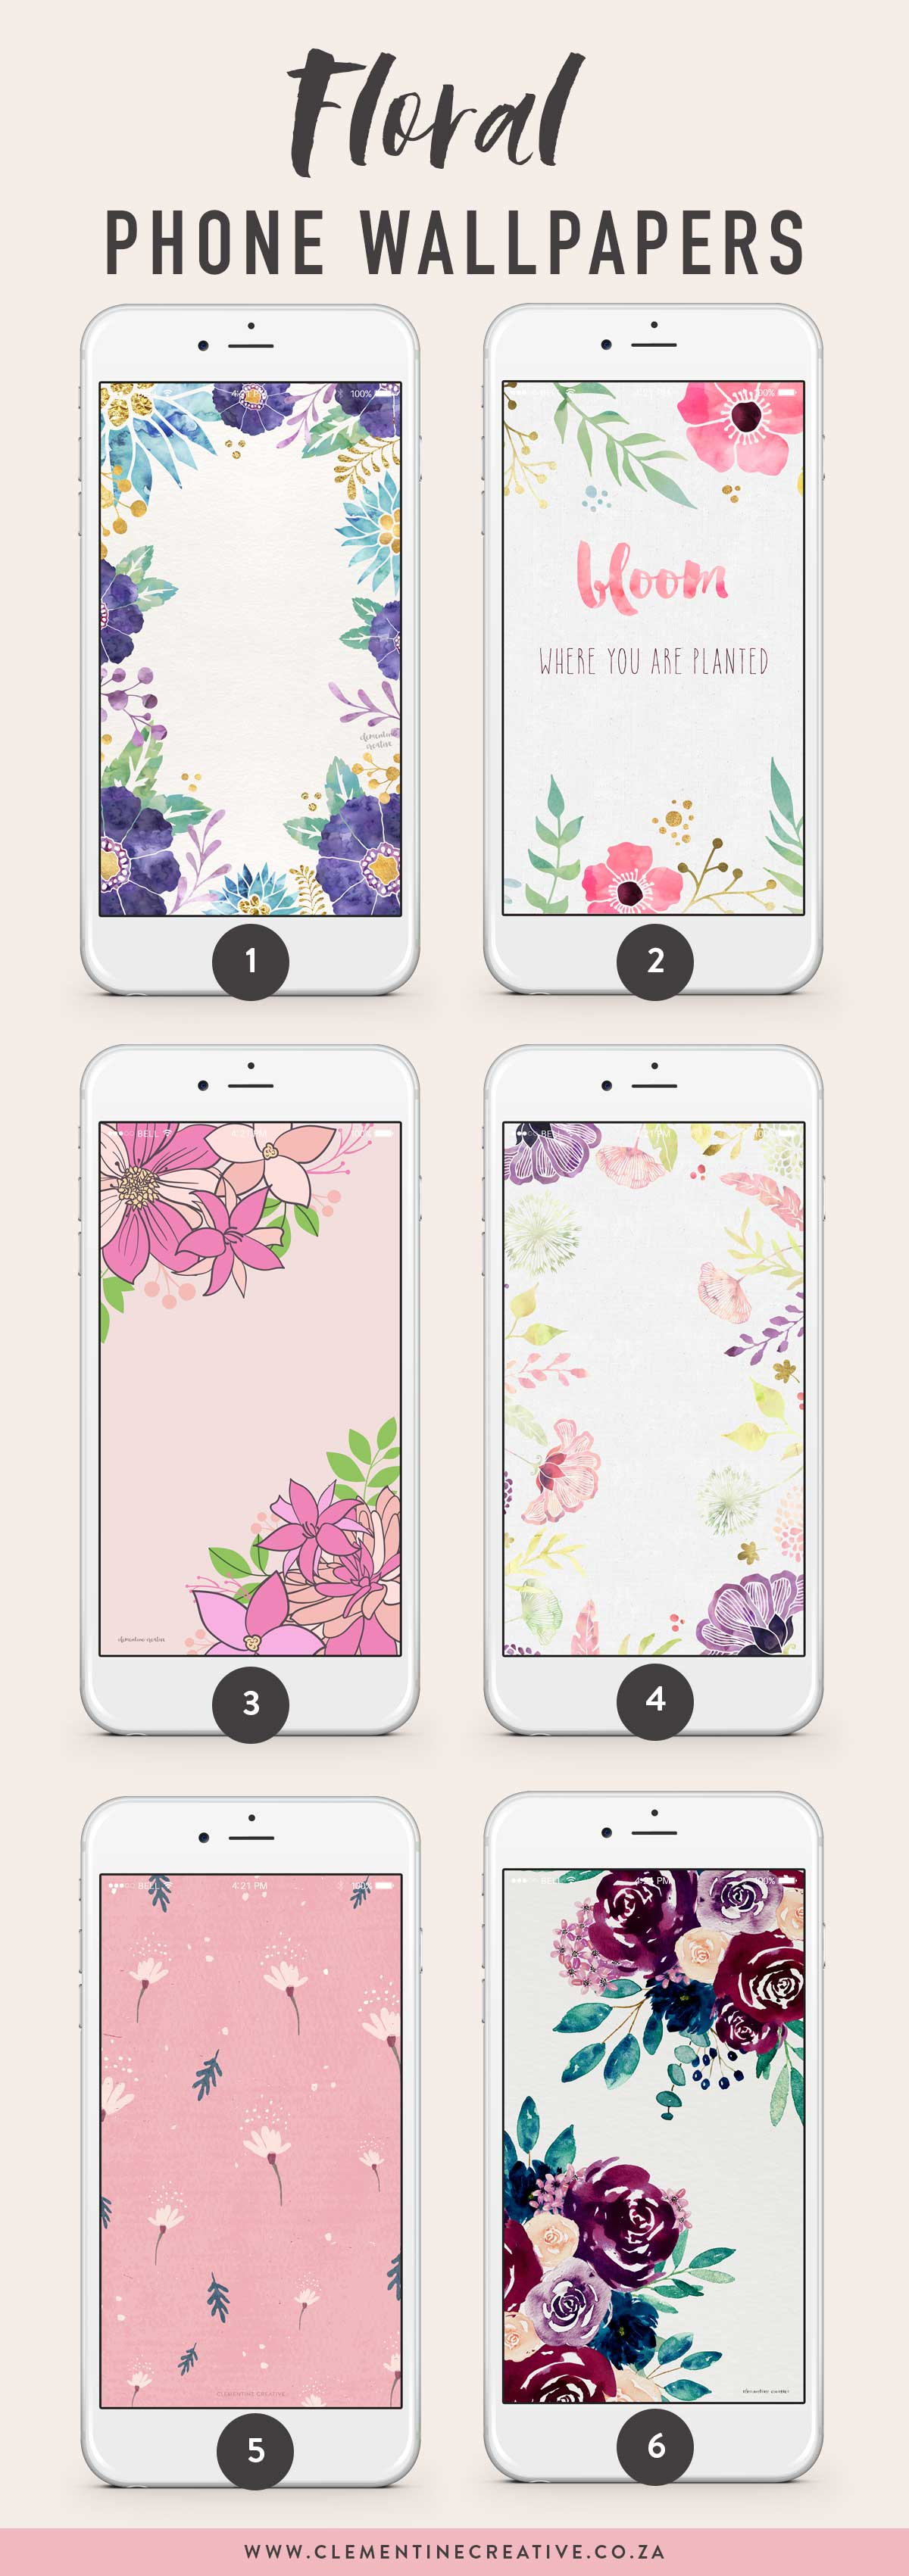 floral phone wallpaper backgrounds